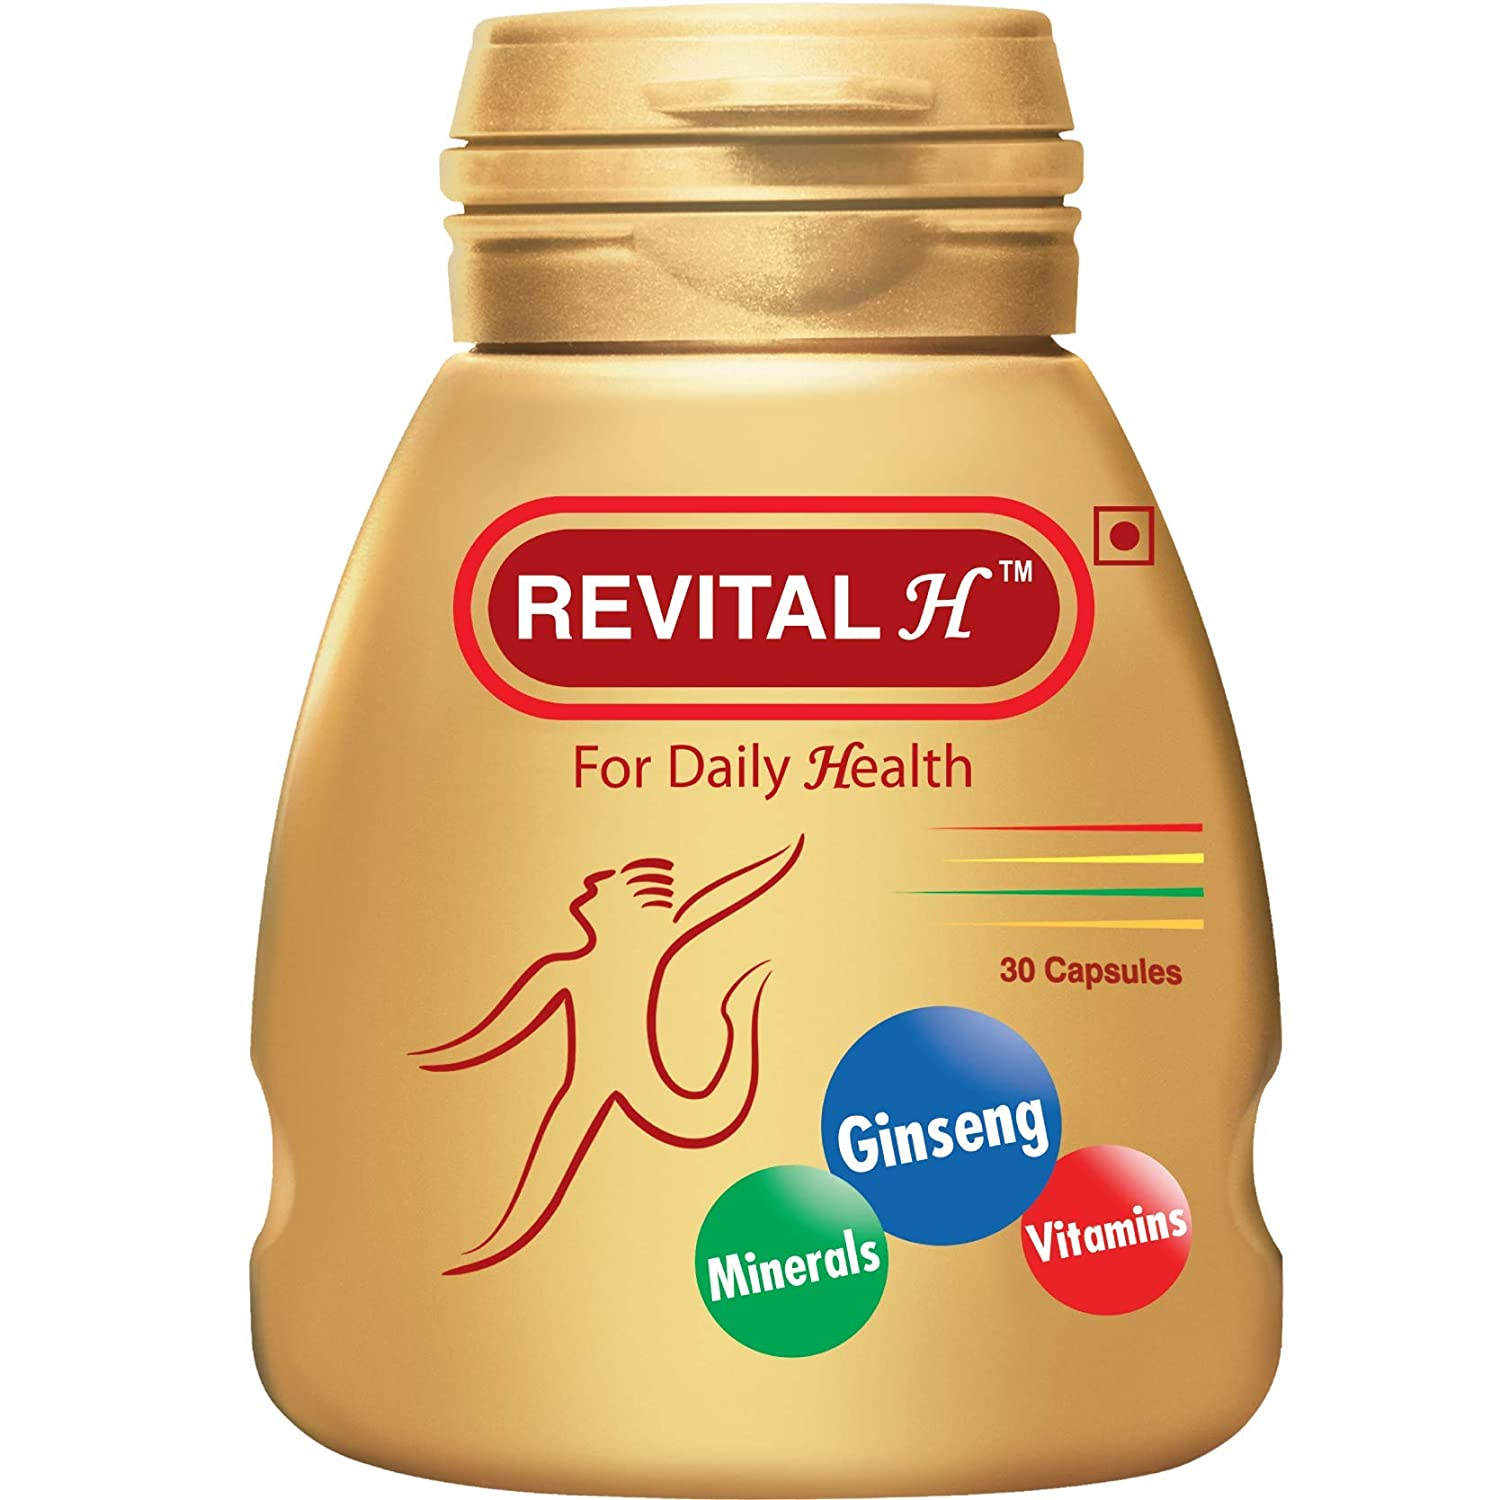 Buy Revital H For Daily Health Capsules - 30 Capsules Online at Low Prices  in India - Amazon.in